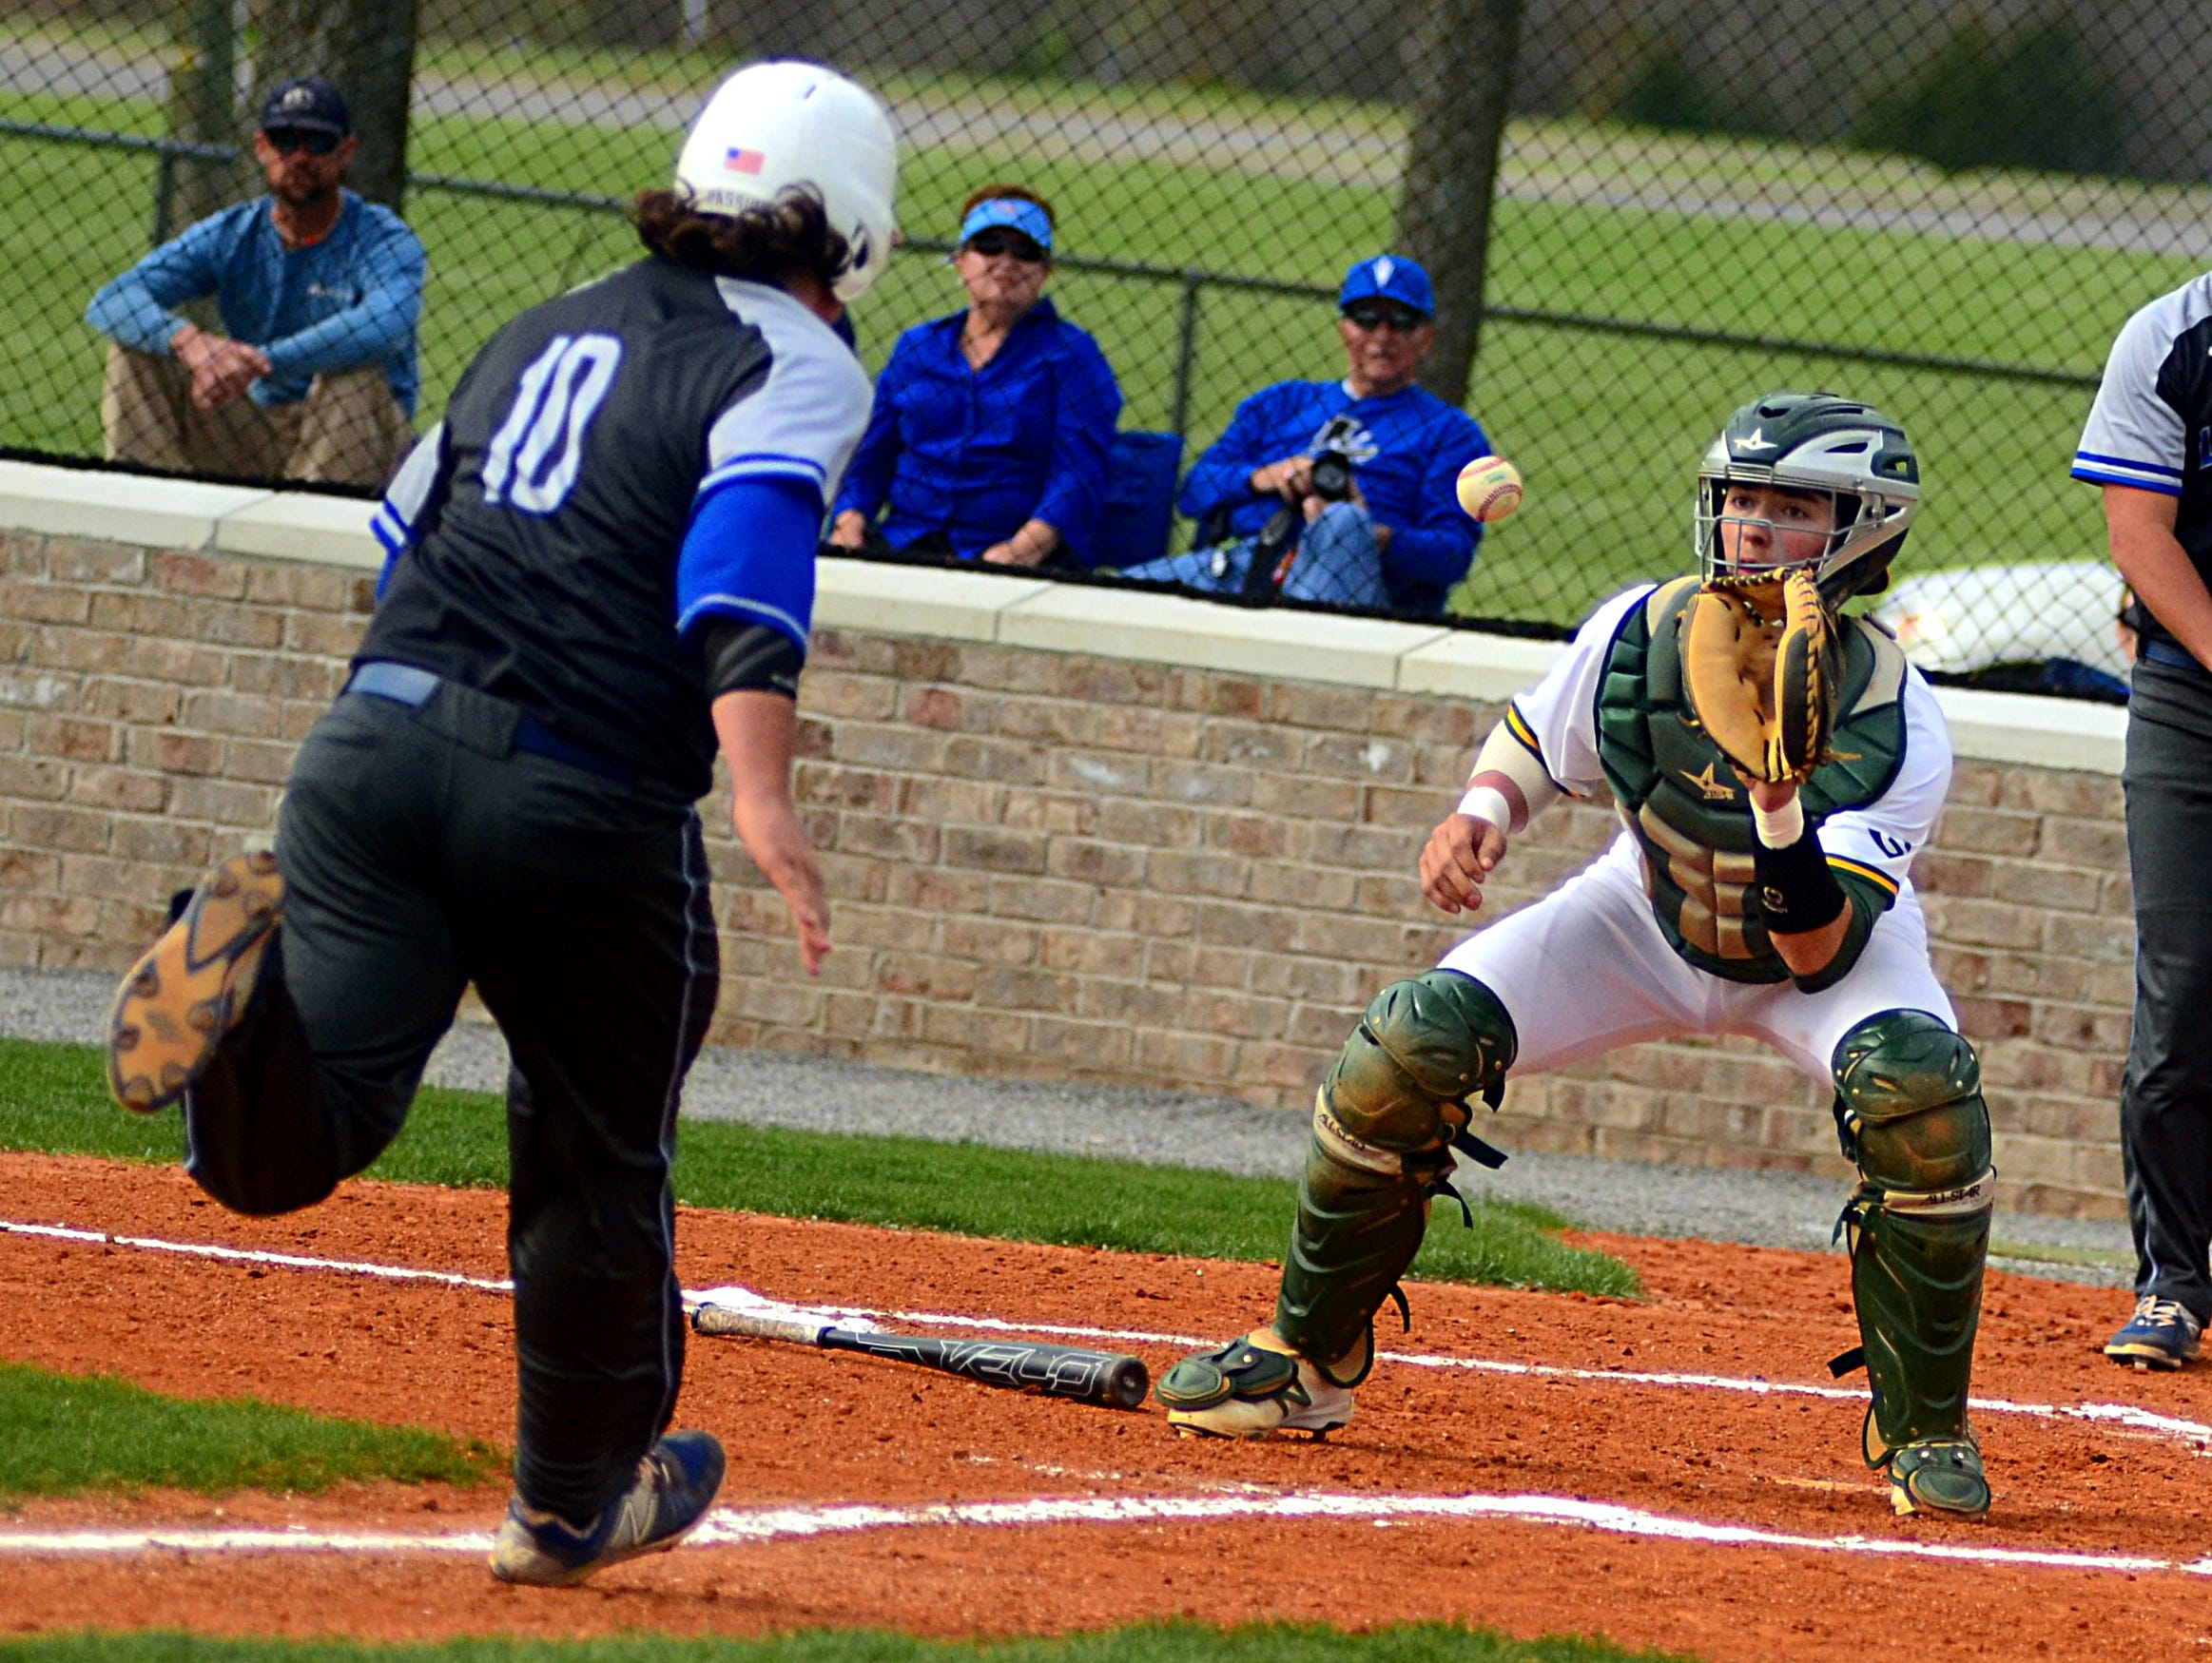 Gallatin High junior catcher Bailey Russell receives a throw at home plate as Lebanon junior Dalton Squires attempts to score during second-inning action.